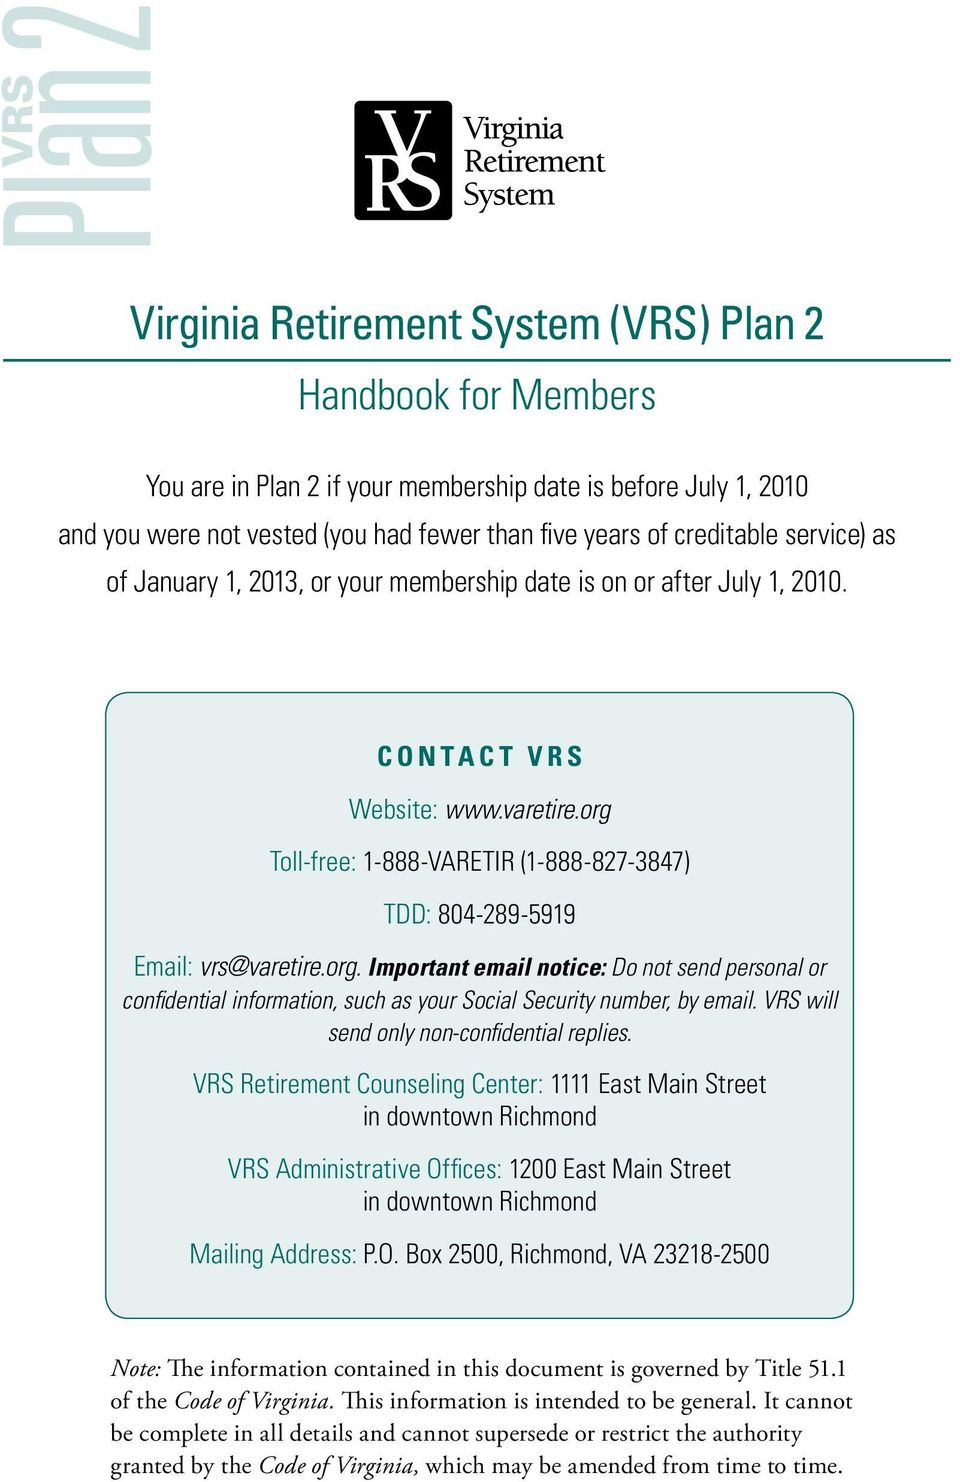 org Toll-free: 1-888-VARETIR (1-888-827-3847) TDD: 804-289-5919 Email: vrs@varetire.org. Important email notice: Do not send personal or confidential information, such as your Social Security number, by email.